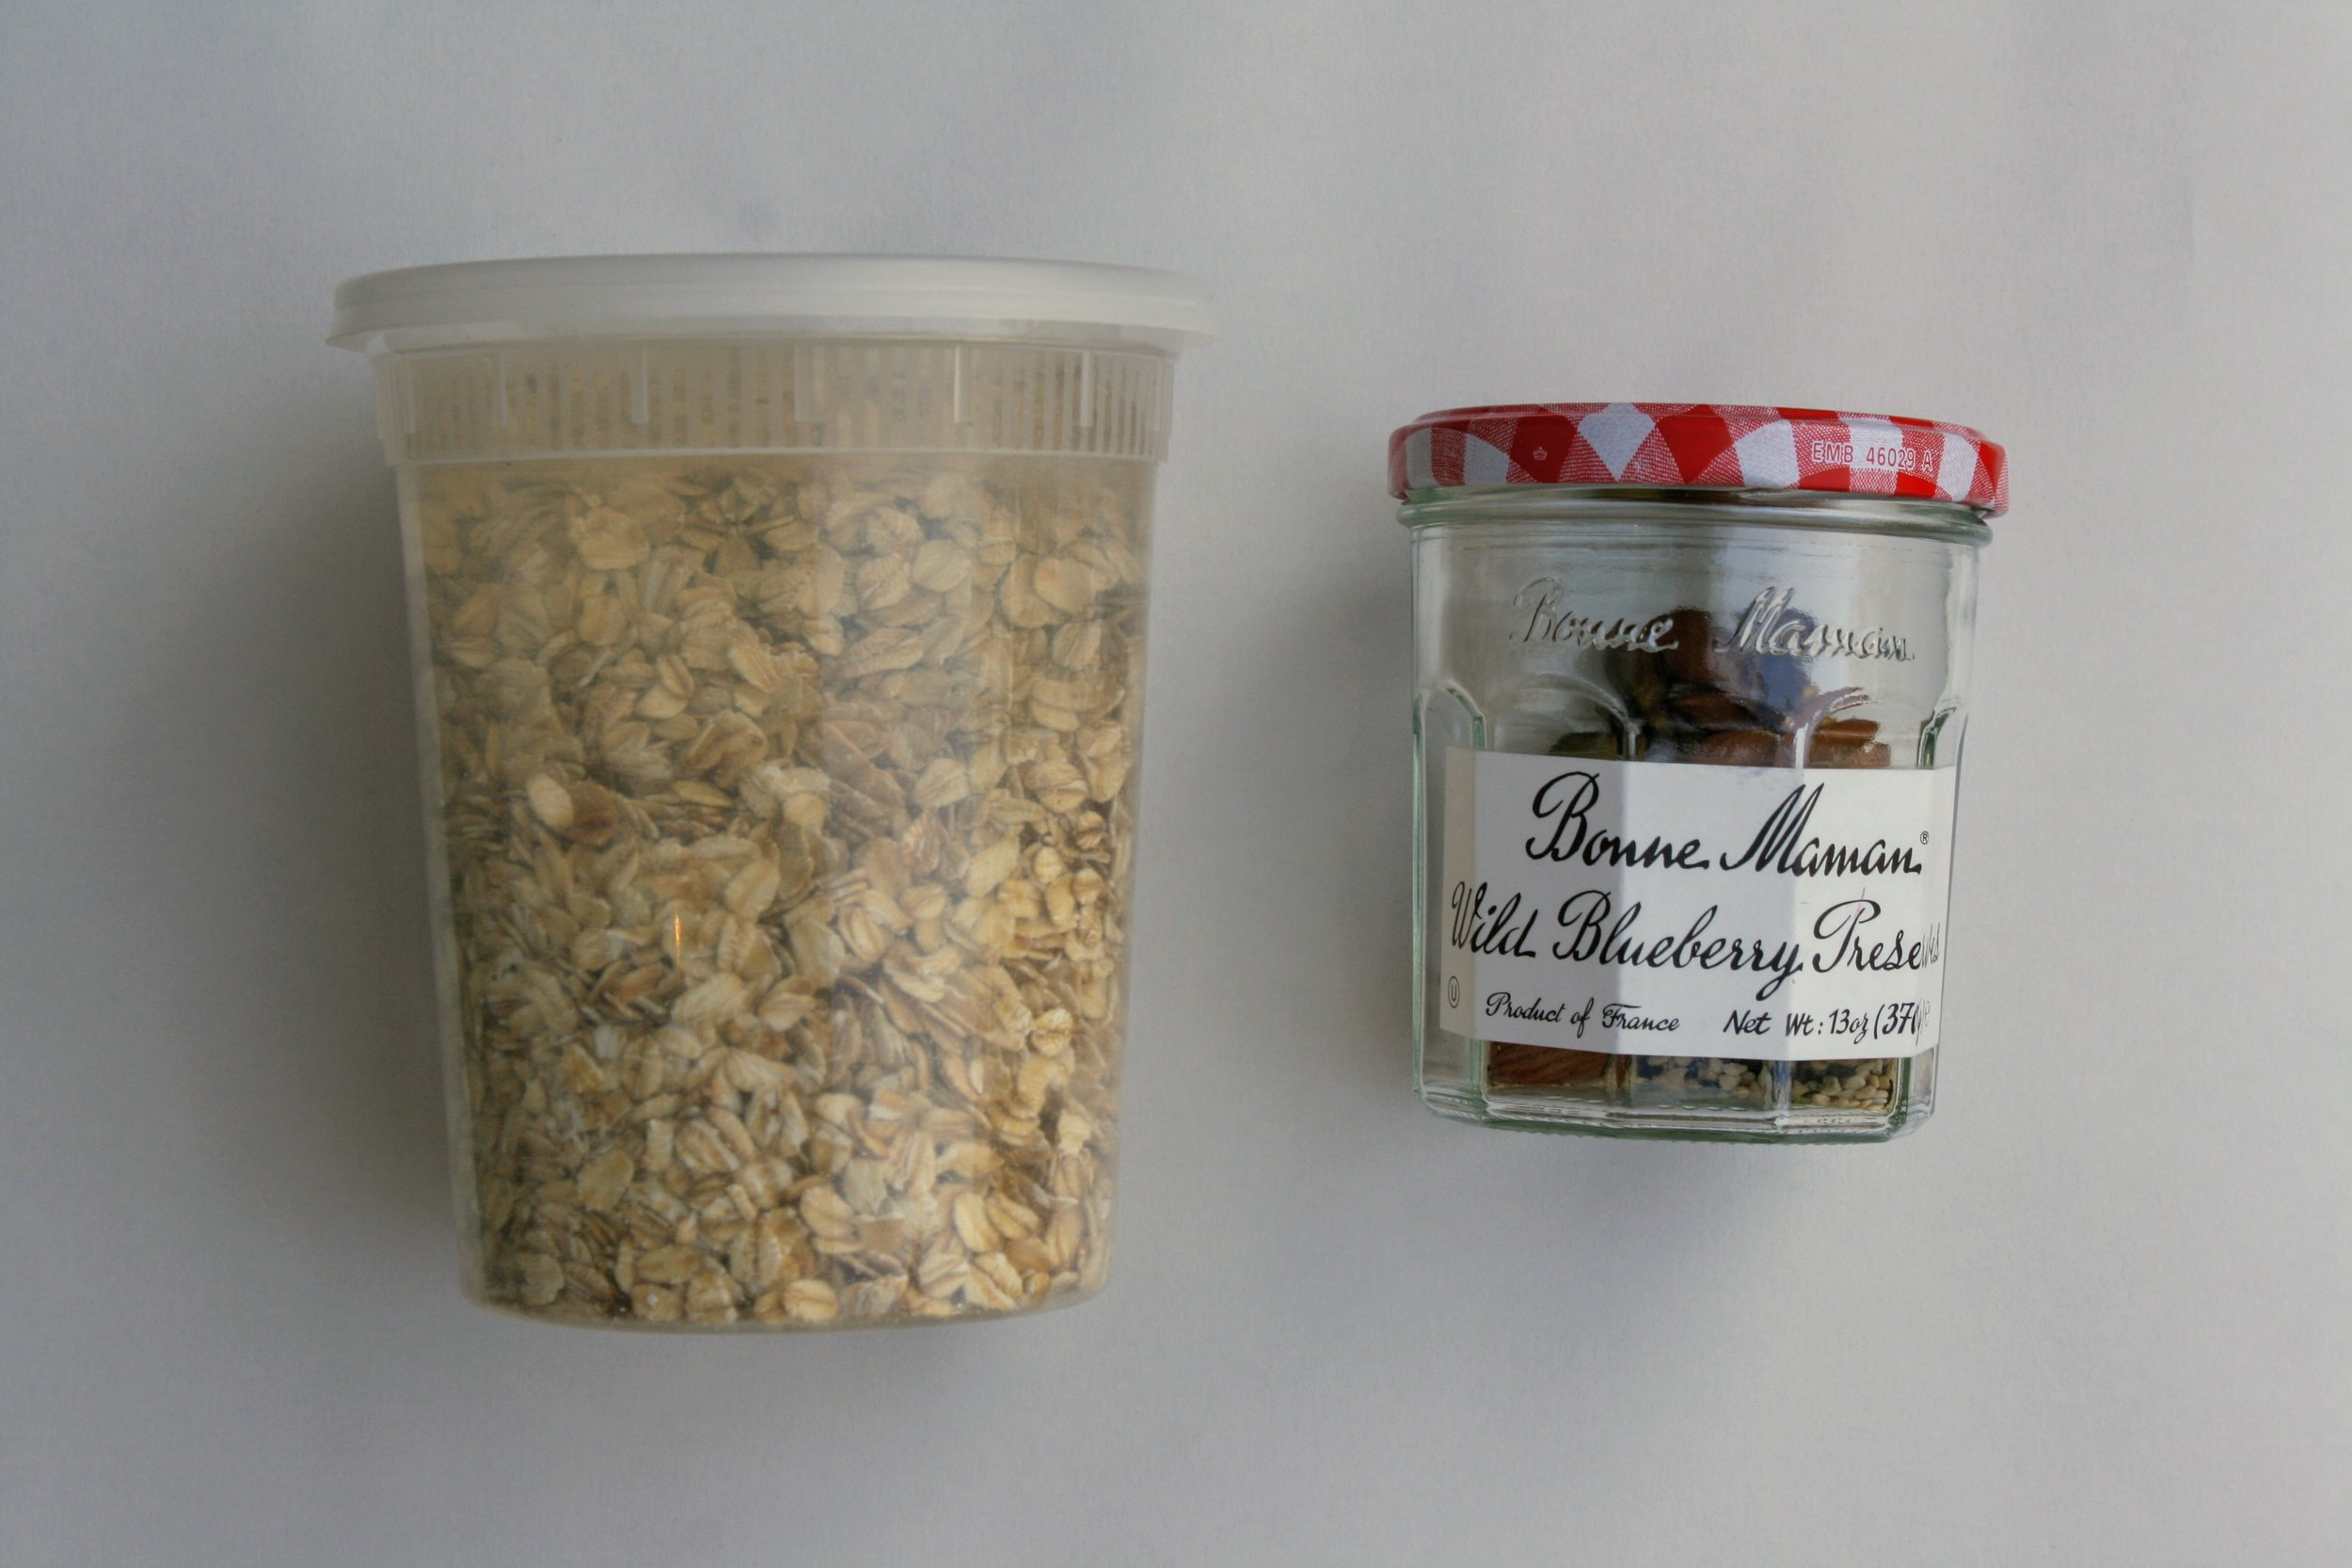 Mismatched, leftover containers are perfect items to reuse to avoid waste. This plastic container was sold with chocolate, and is now used to purchase bulk oats. The glass jar has been in my family for years, and now holds bulk mixed nuts.